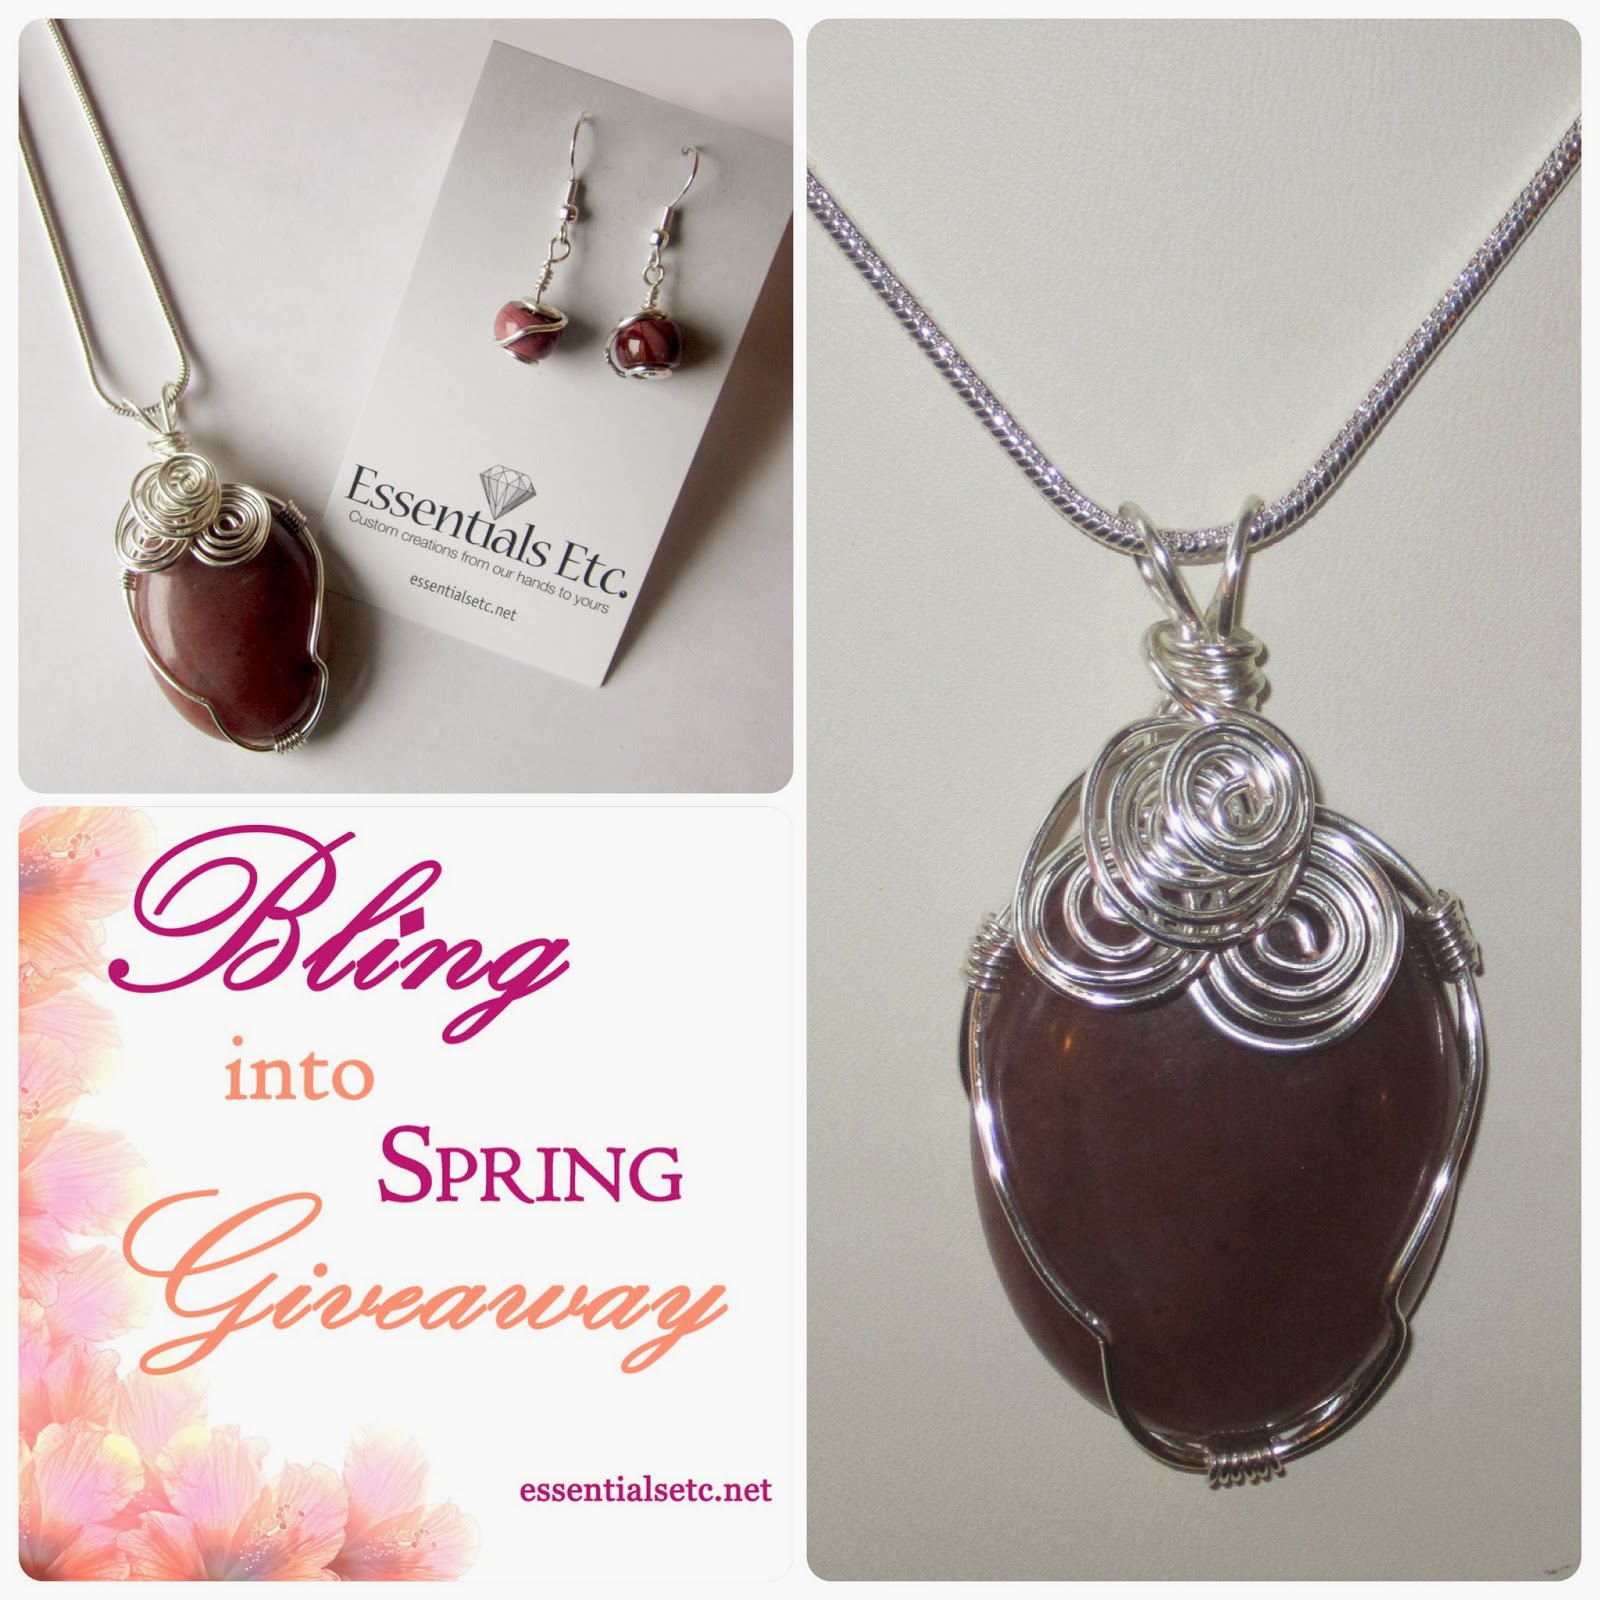 Bling into Spring Giveaway - Florence Necklace & Earring Set